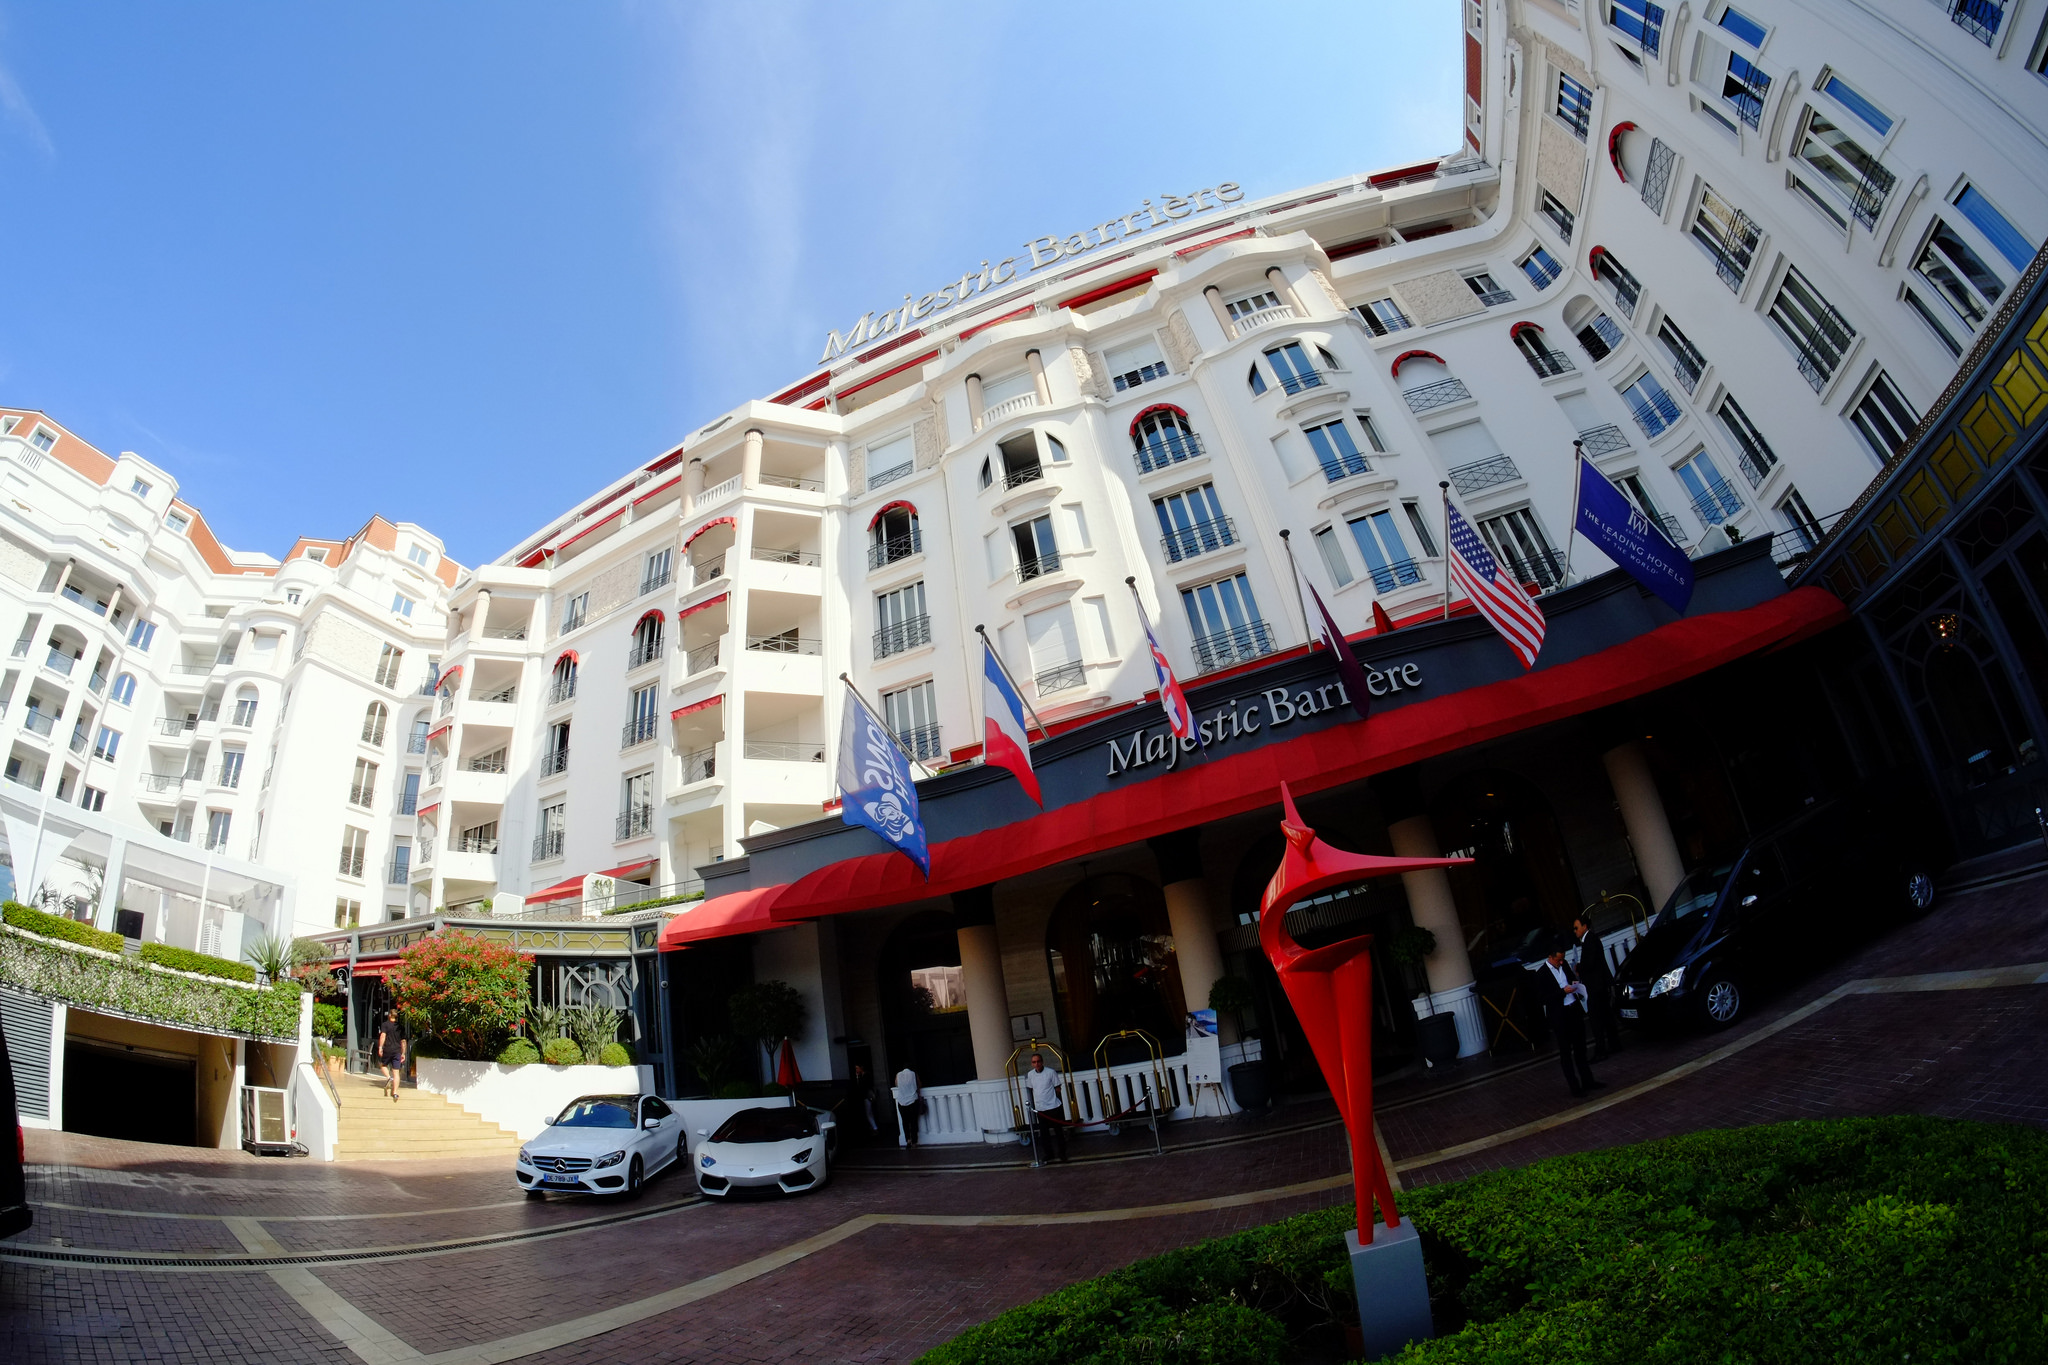 Hotel majestic barri re hotel in cannes thousand wonders for Hotels barriere